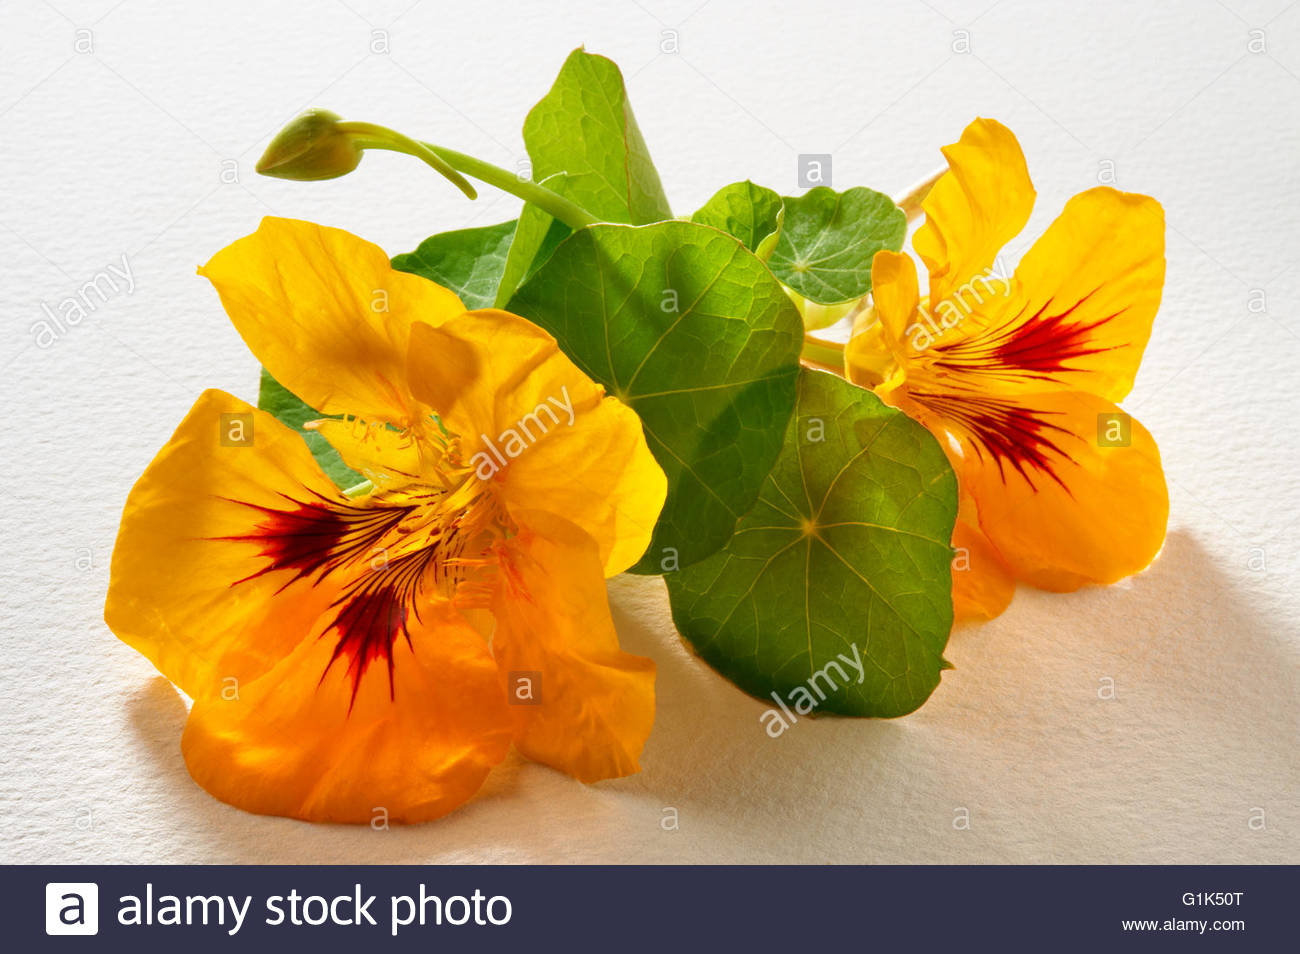 yellow nasturtium tropaeolum stockfotos yellow. Black Bedroom Furniture Sets. Home Design Ideas